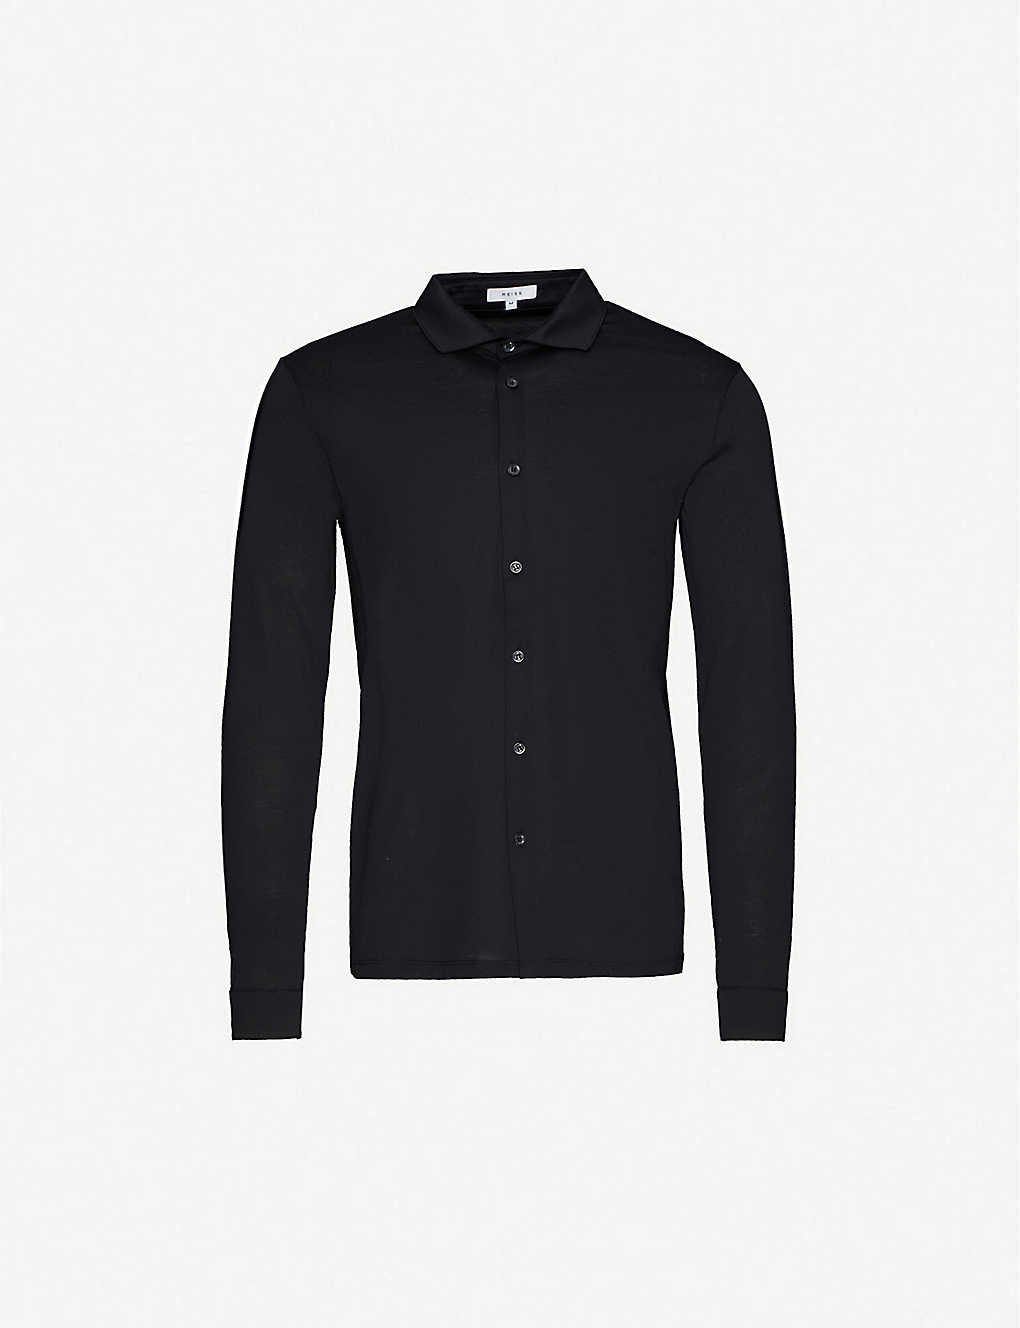 REISS: Chapter cotton shirt